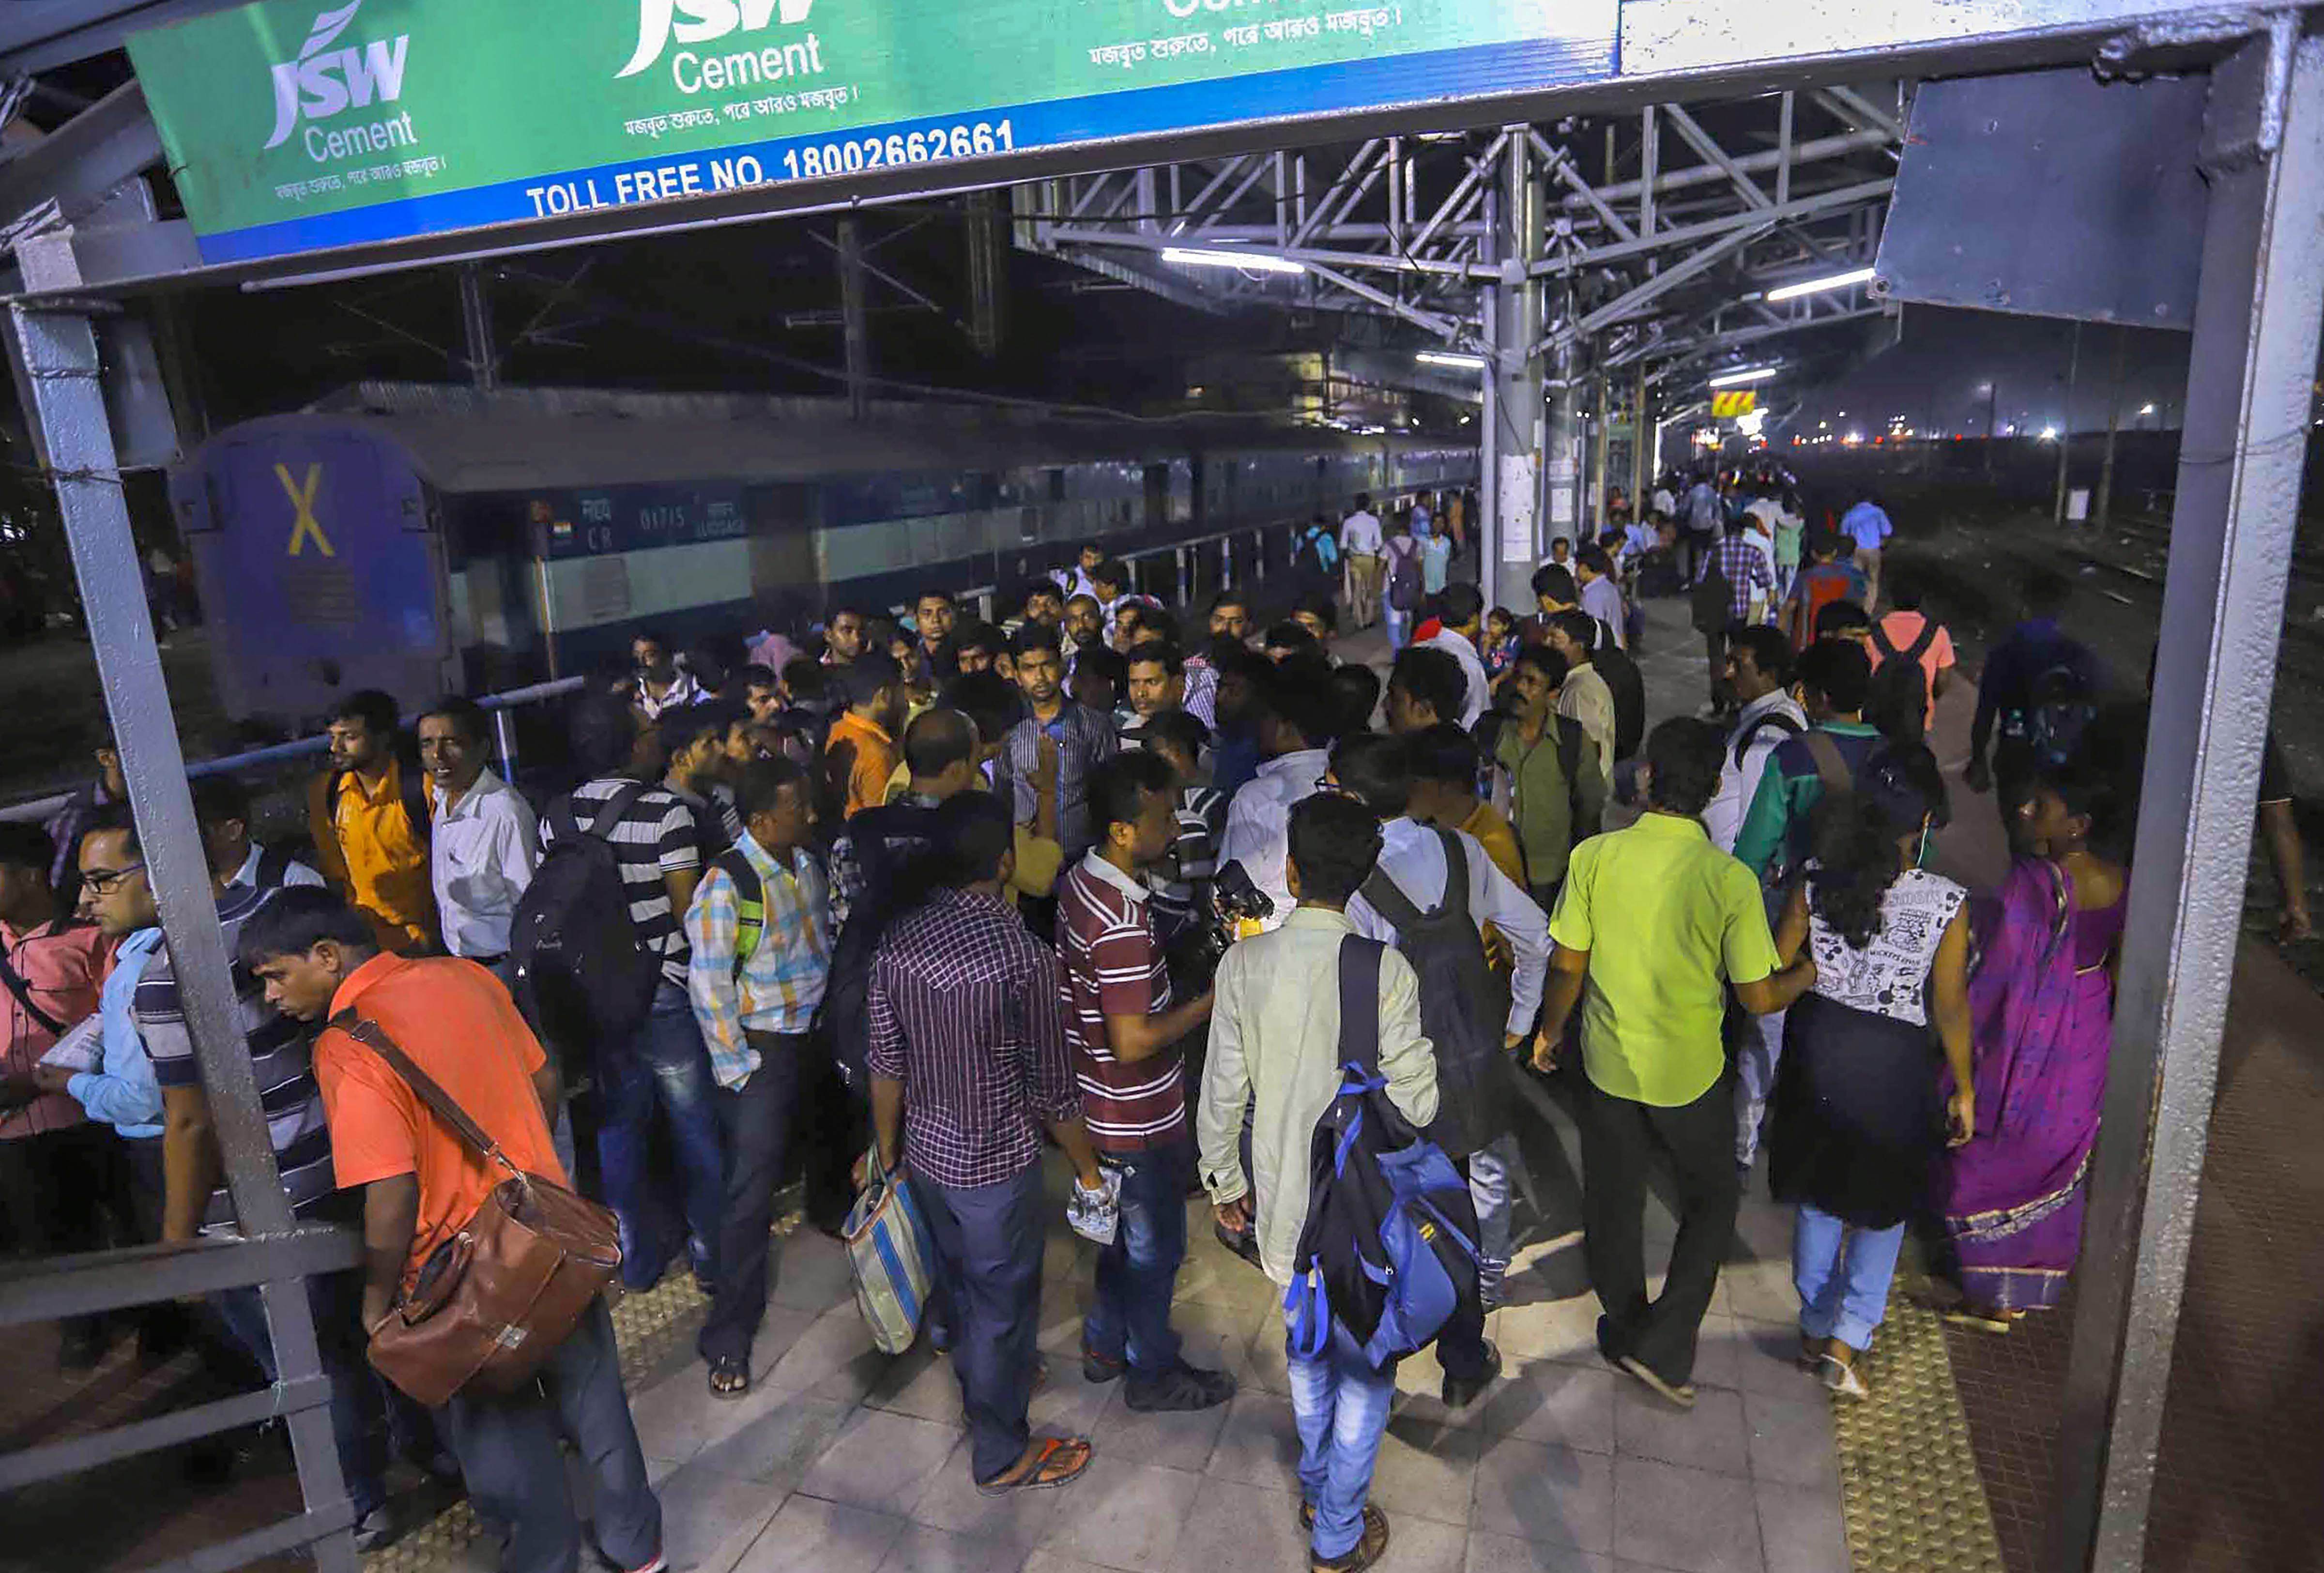 Passengers at a platform at Santragachi station where a stampede took place, in Howrah district of West Bengal, on Tuesday. PTI